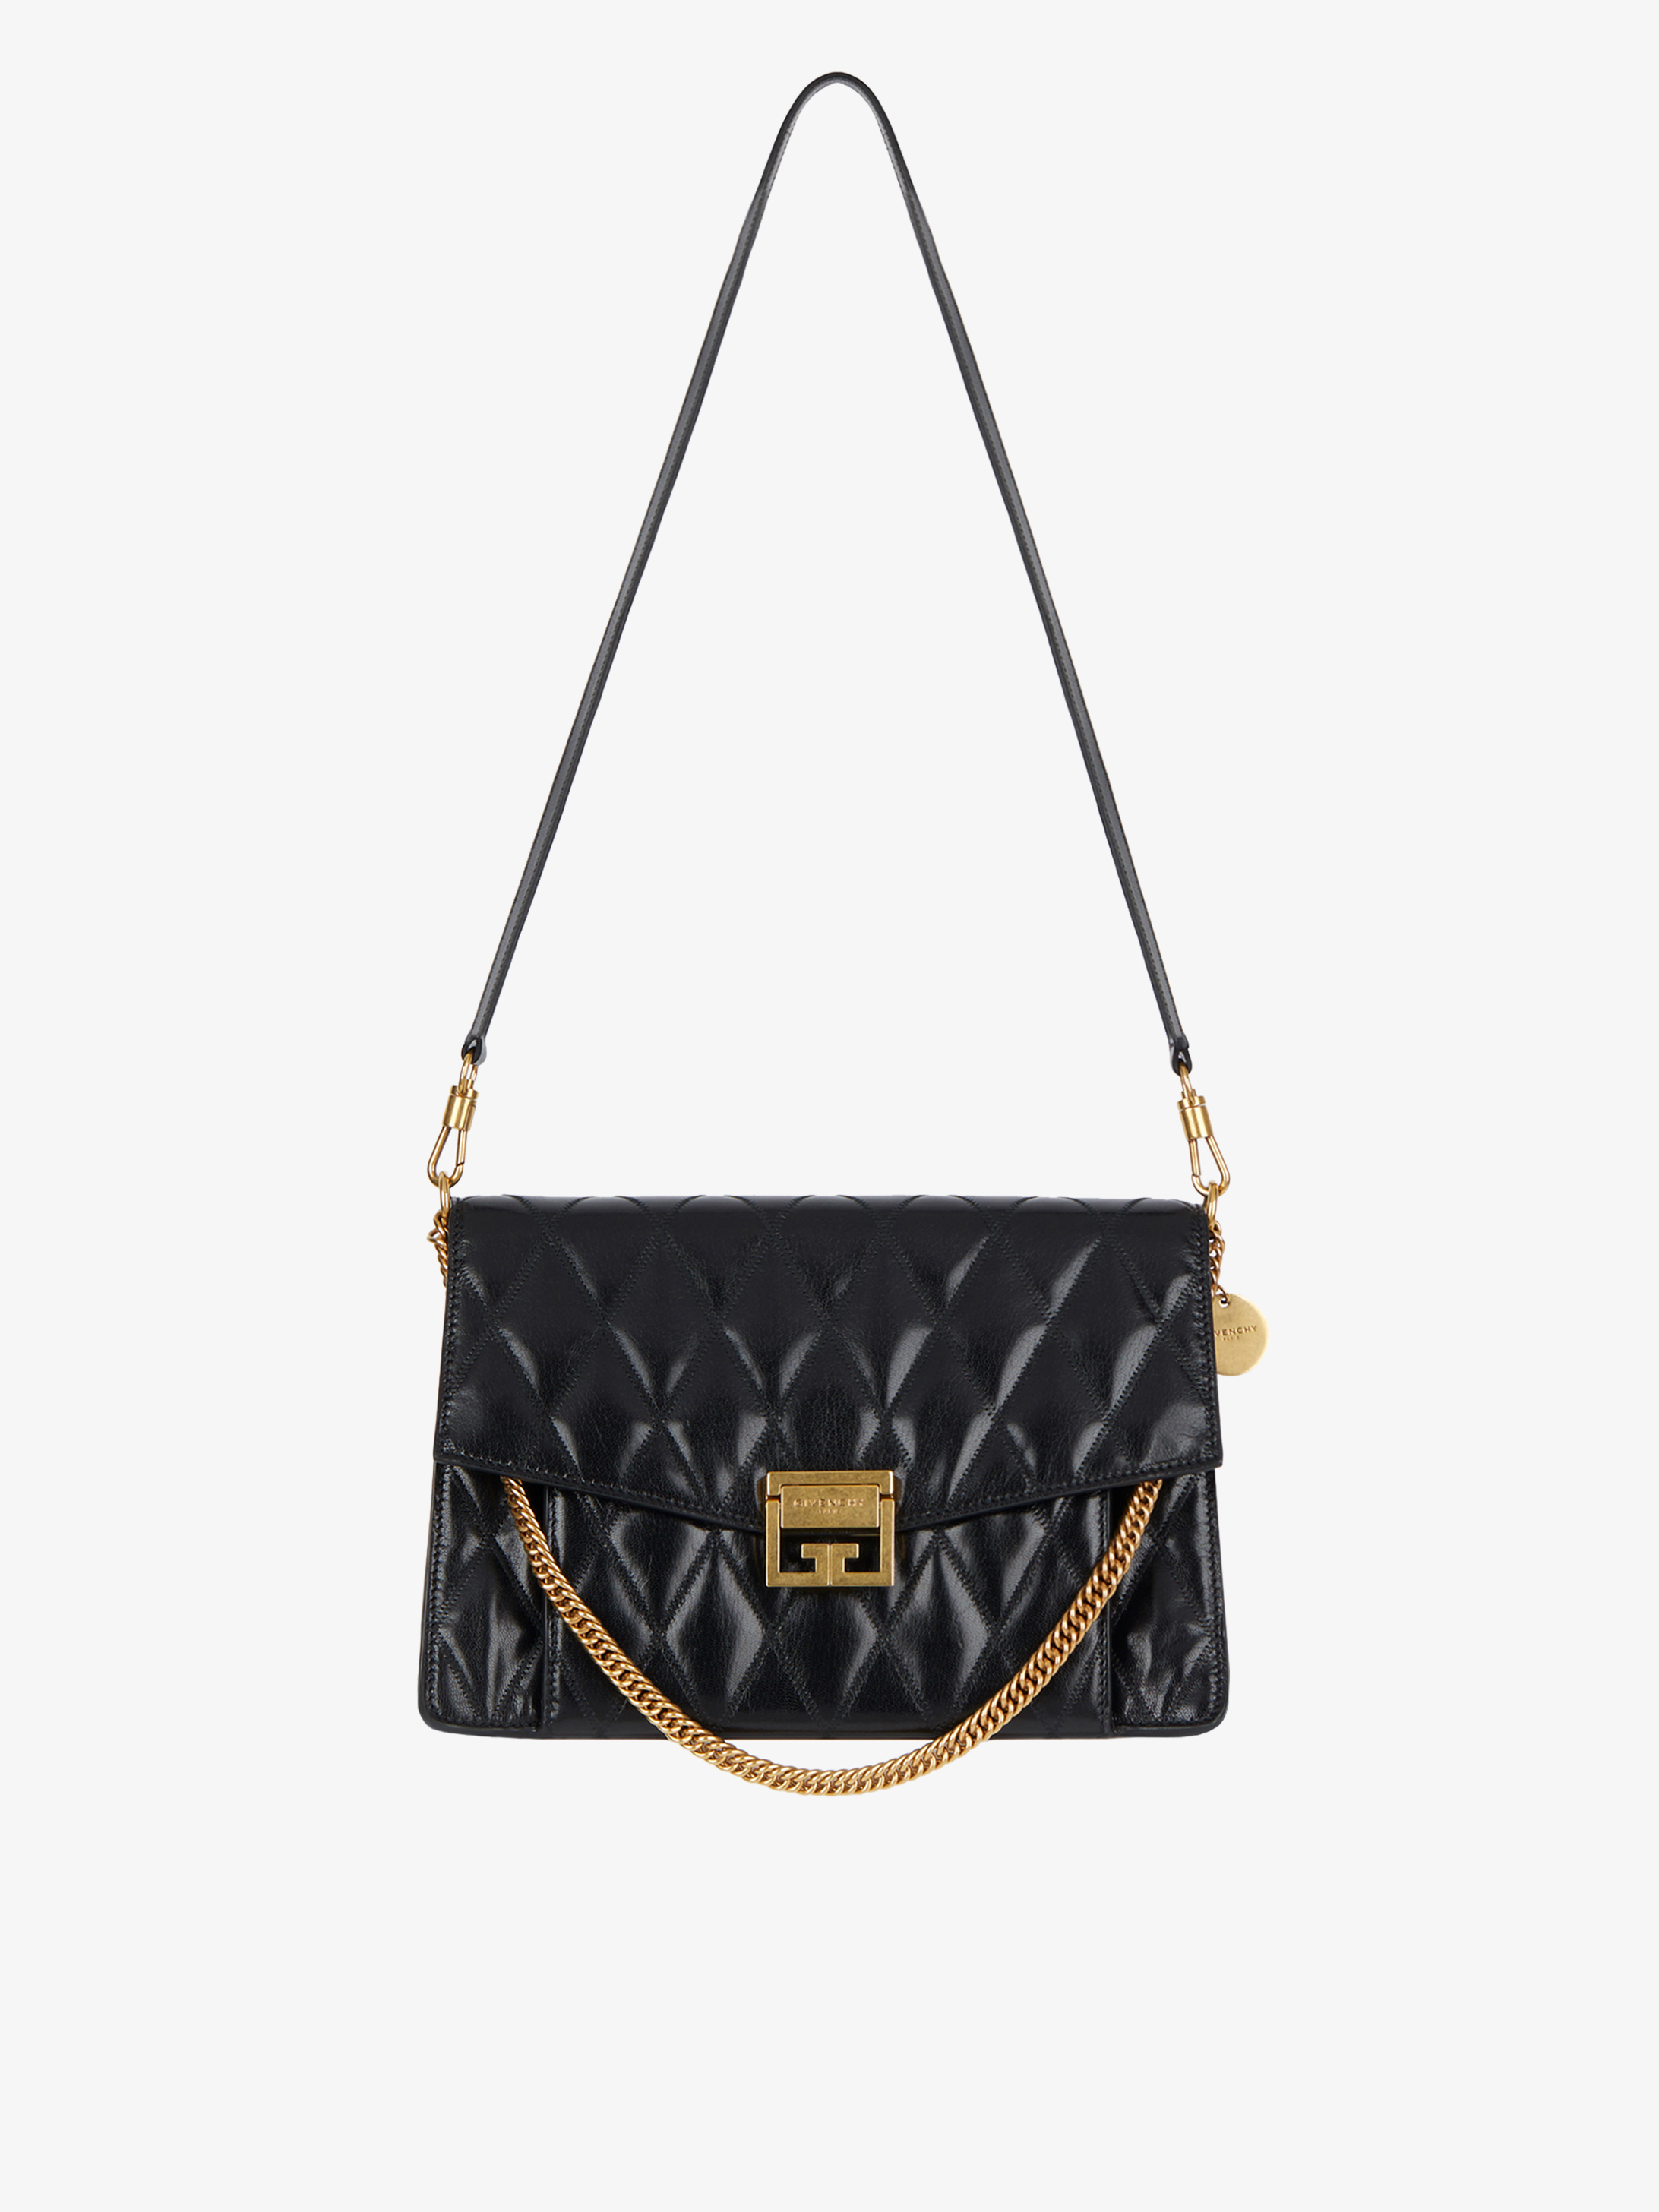 Medium GV3 bag in diamond quilted leather